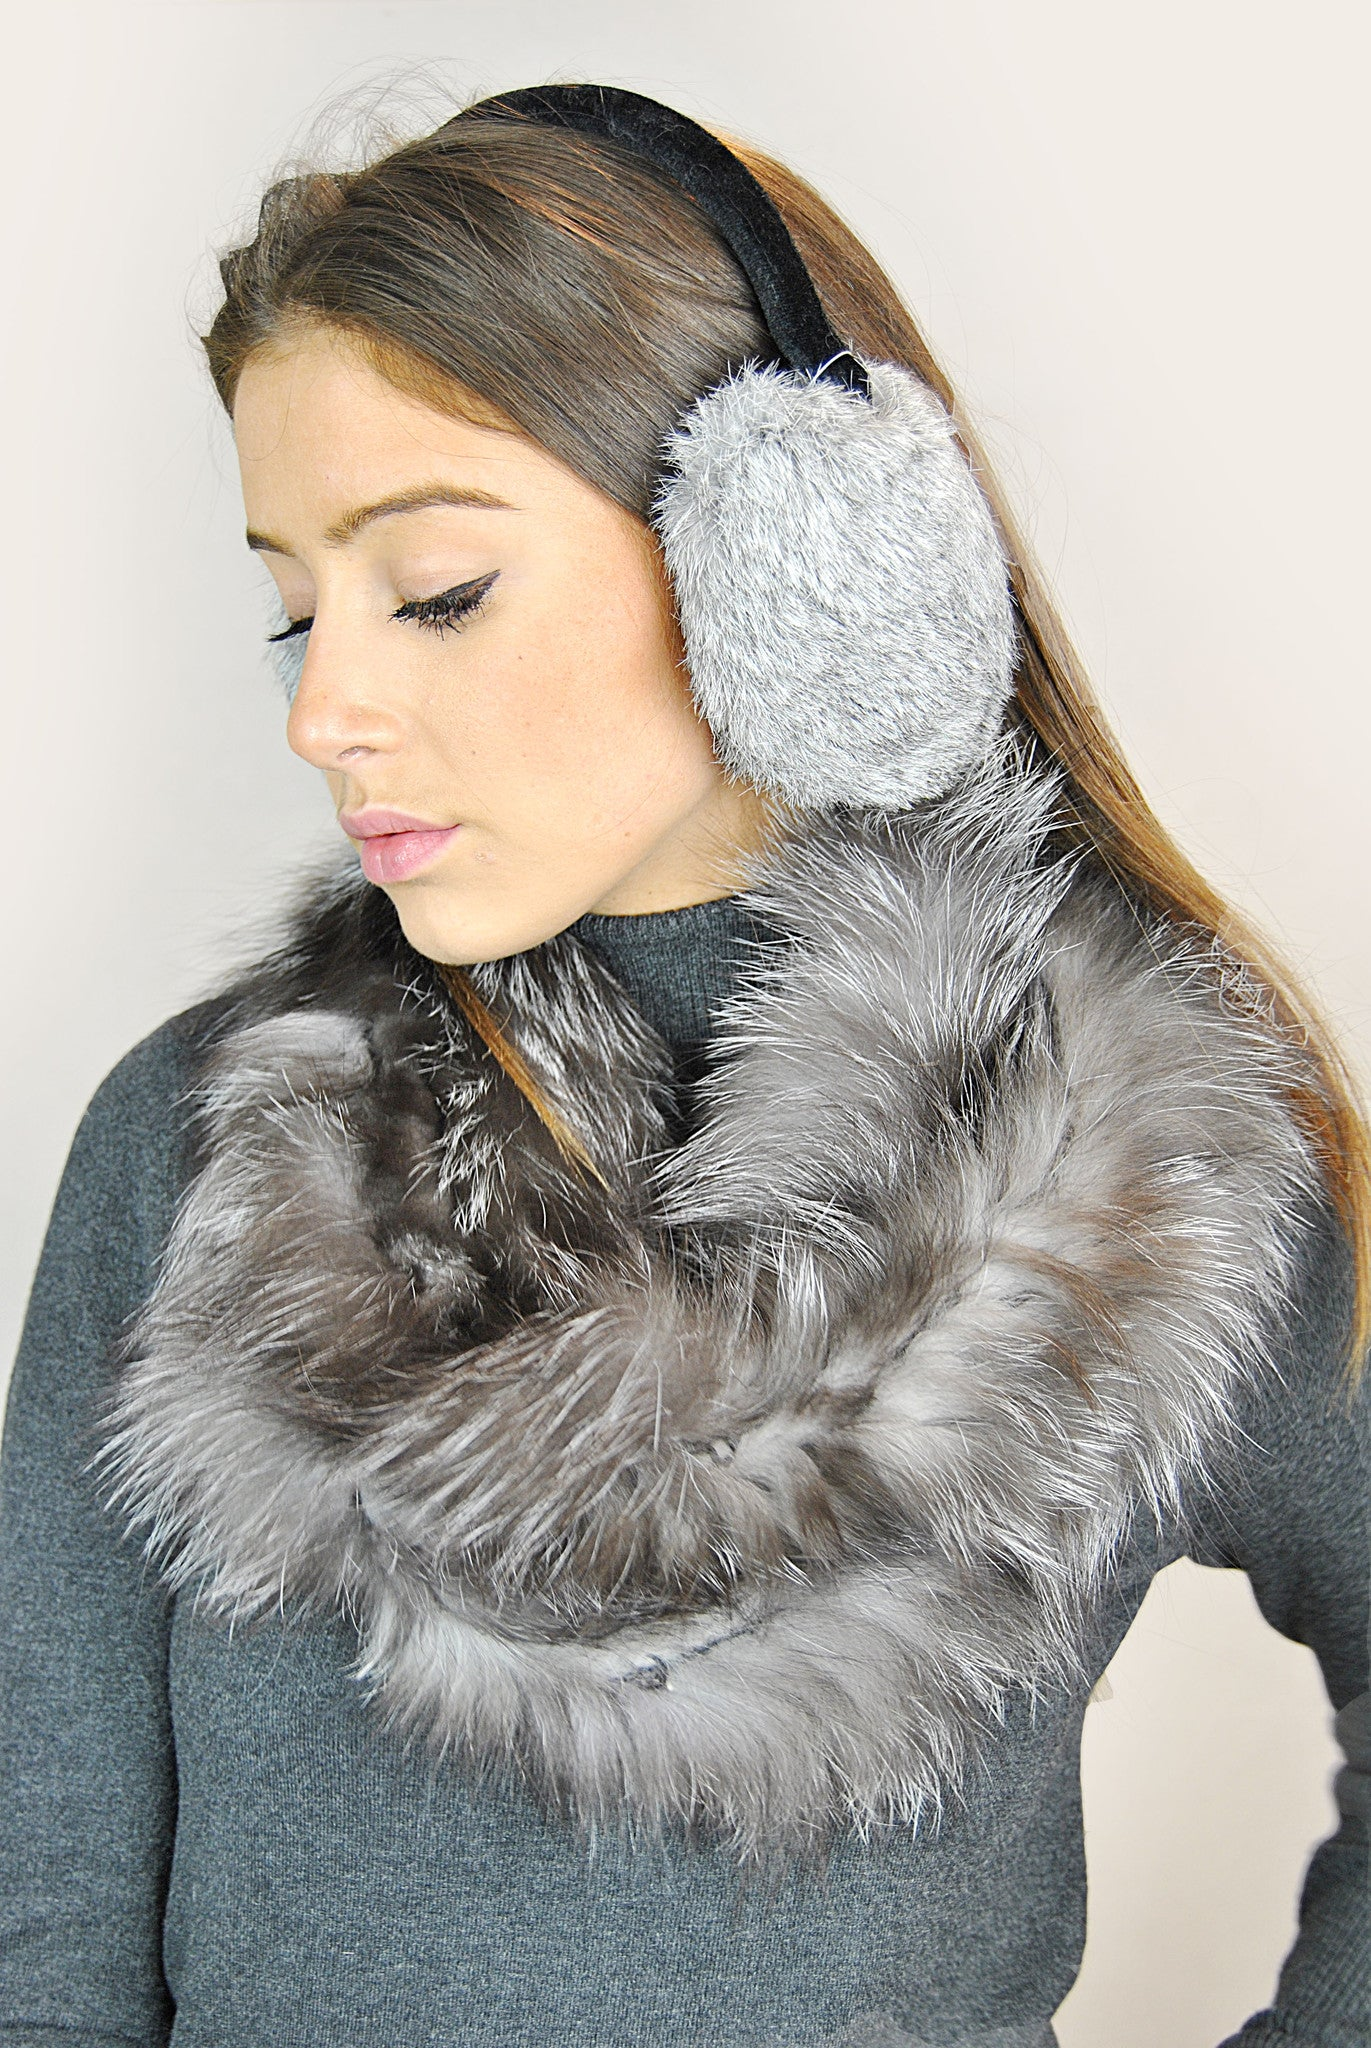 Jessimara Grey Rabbit Ear Muffs